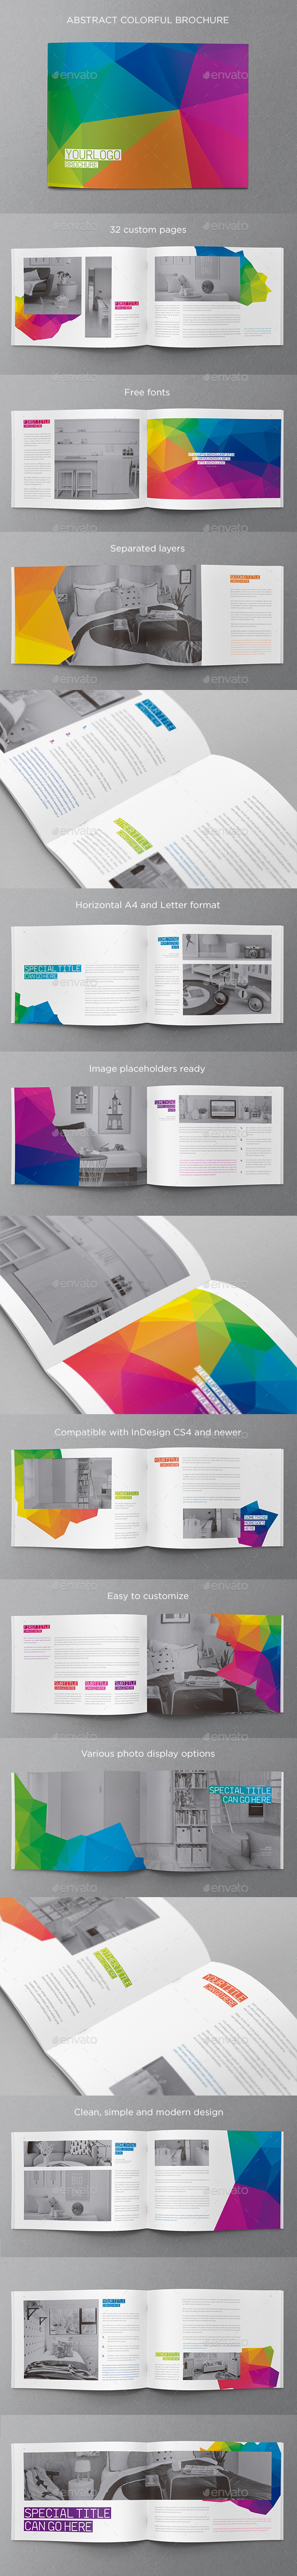 Abstract Modern Brochure - Brochures Print Templates